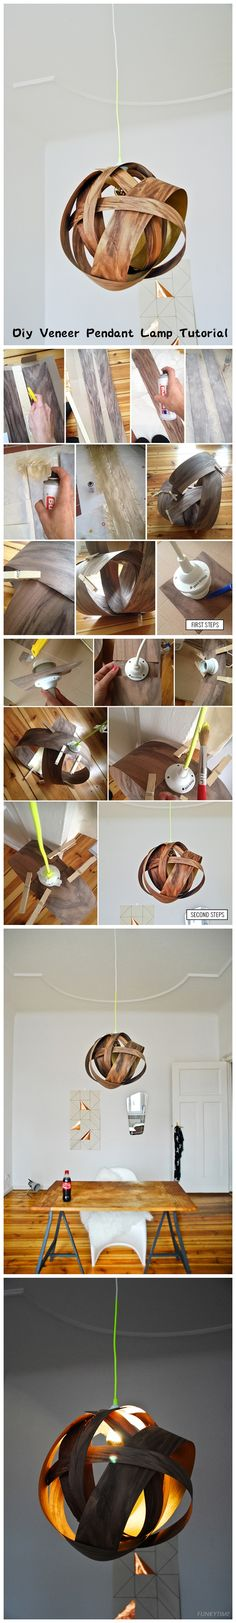 Diy Veneer Pendant Lamp Tutorial